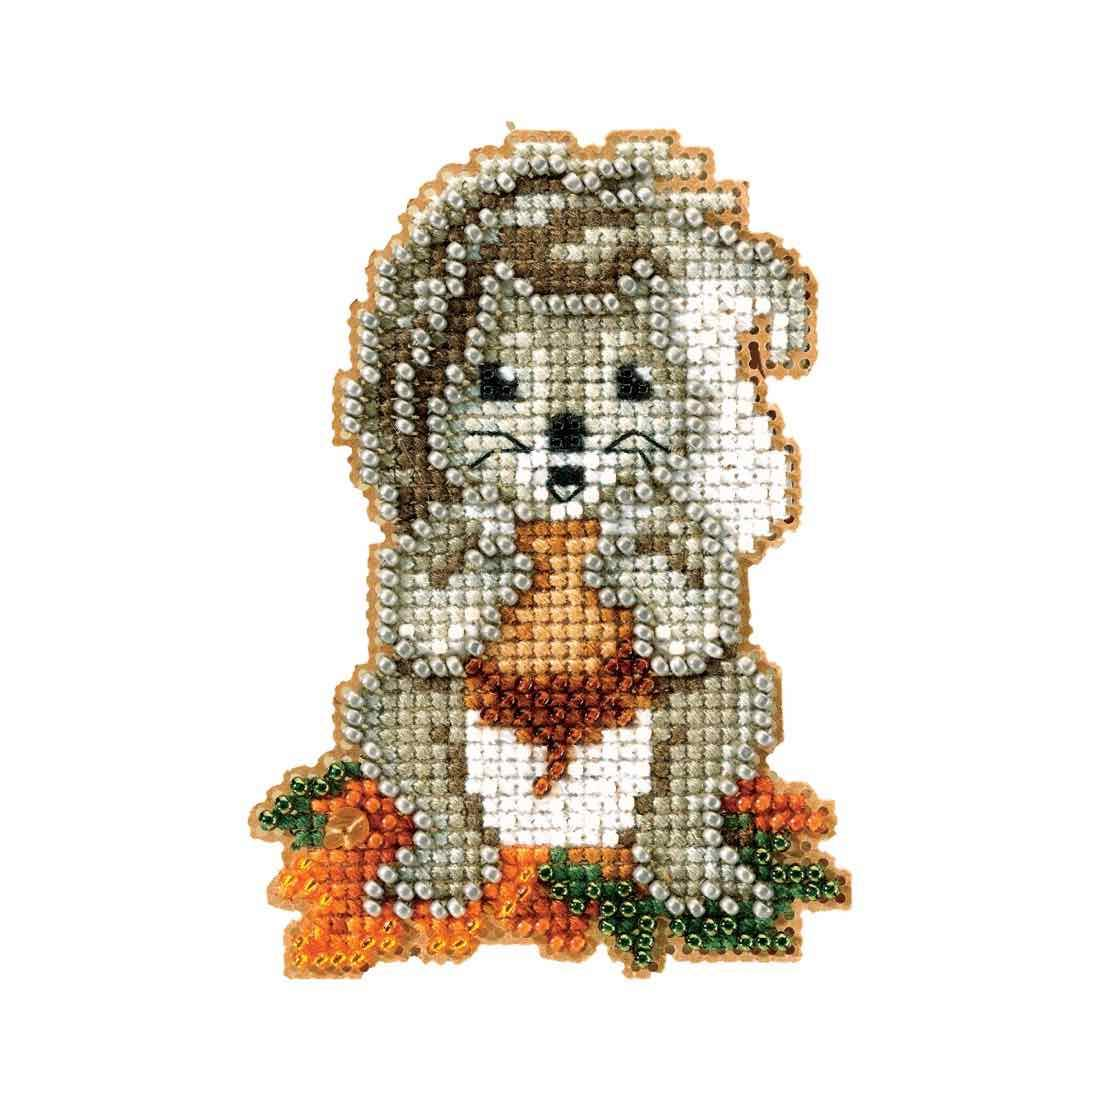 Squirrelly Beaded Counted Cross Stitch Ornament Kit Mill Hill 2012 Autumn Harvest MH18-2206 Wichelt MH182206